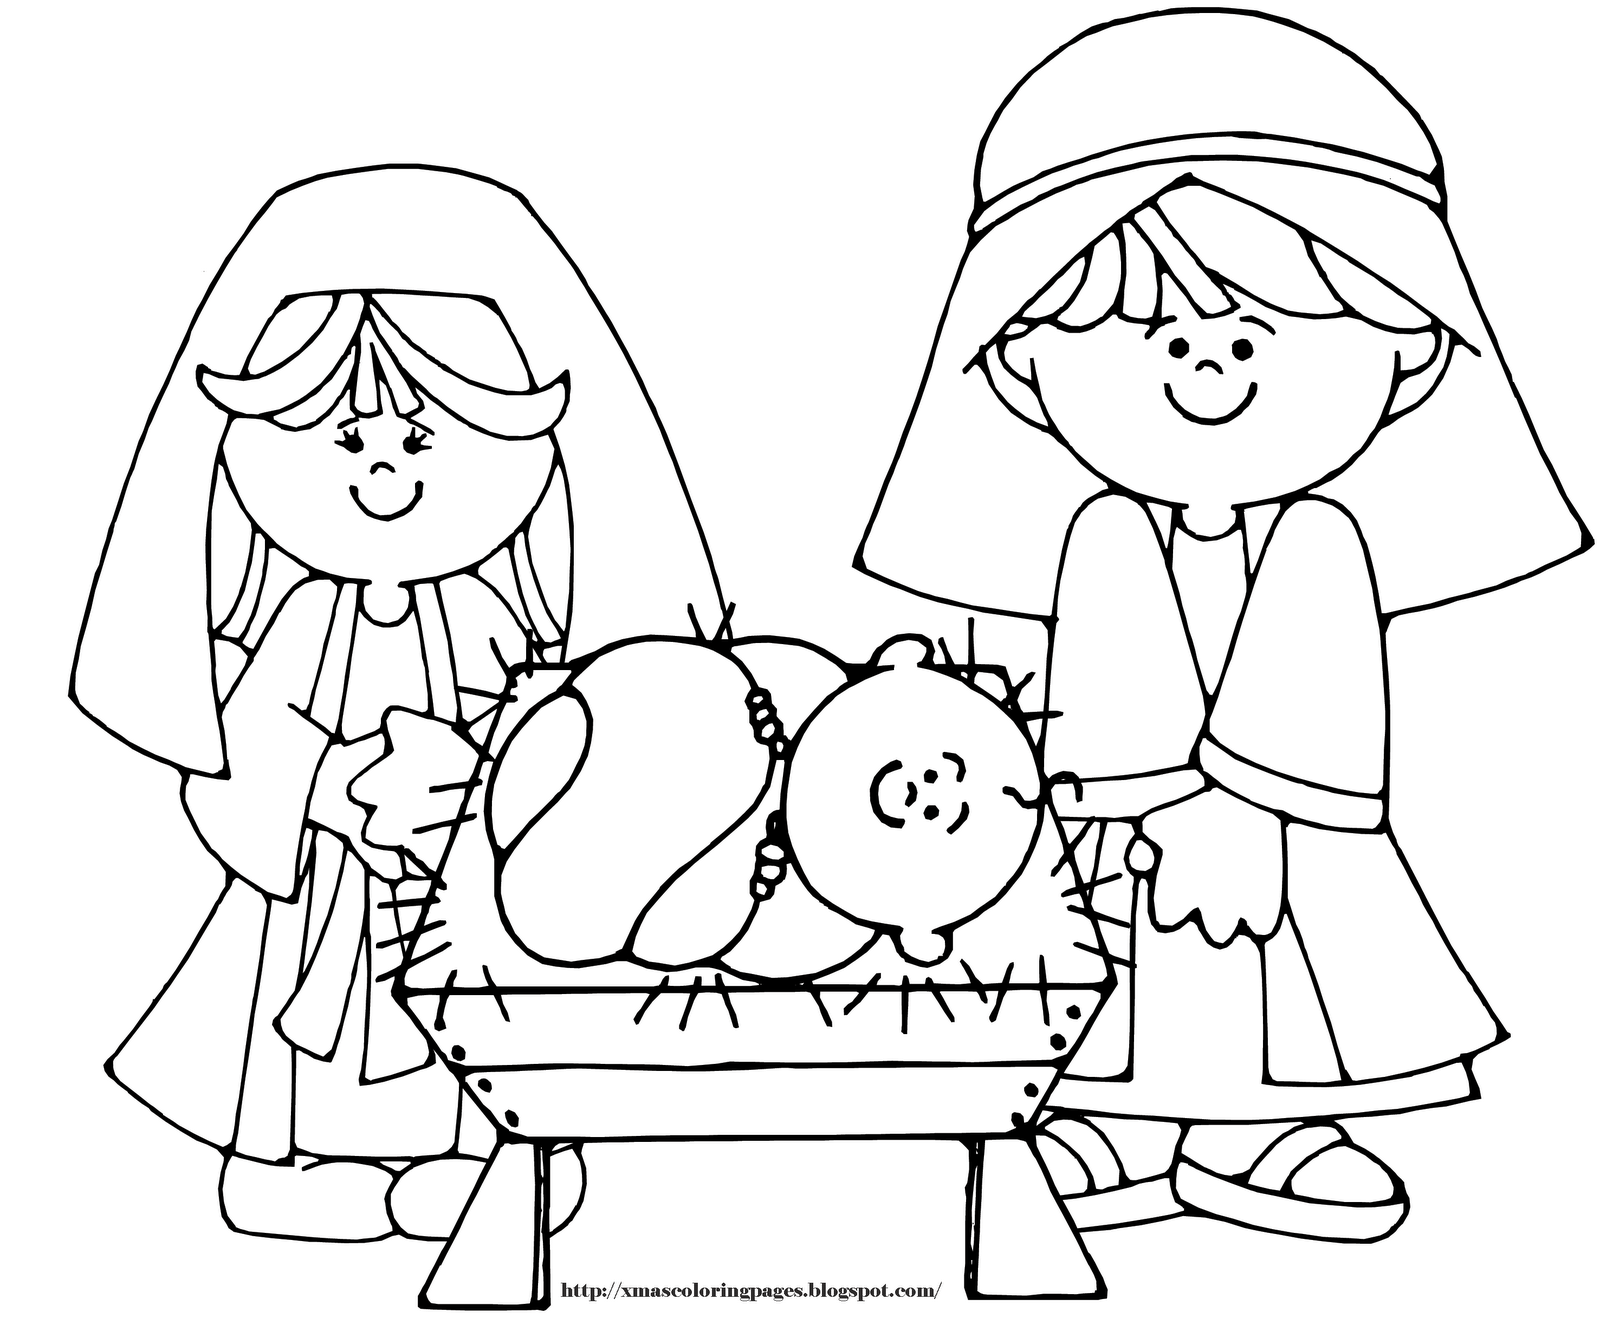 Manger Coloring Pages To Print